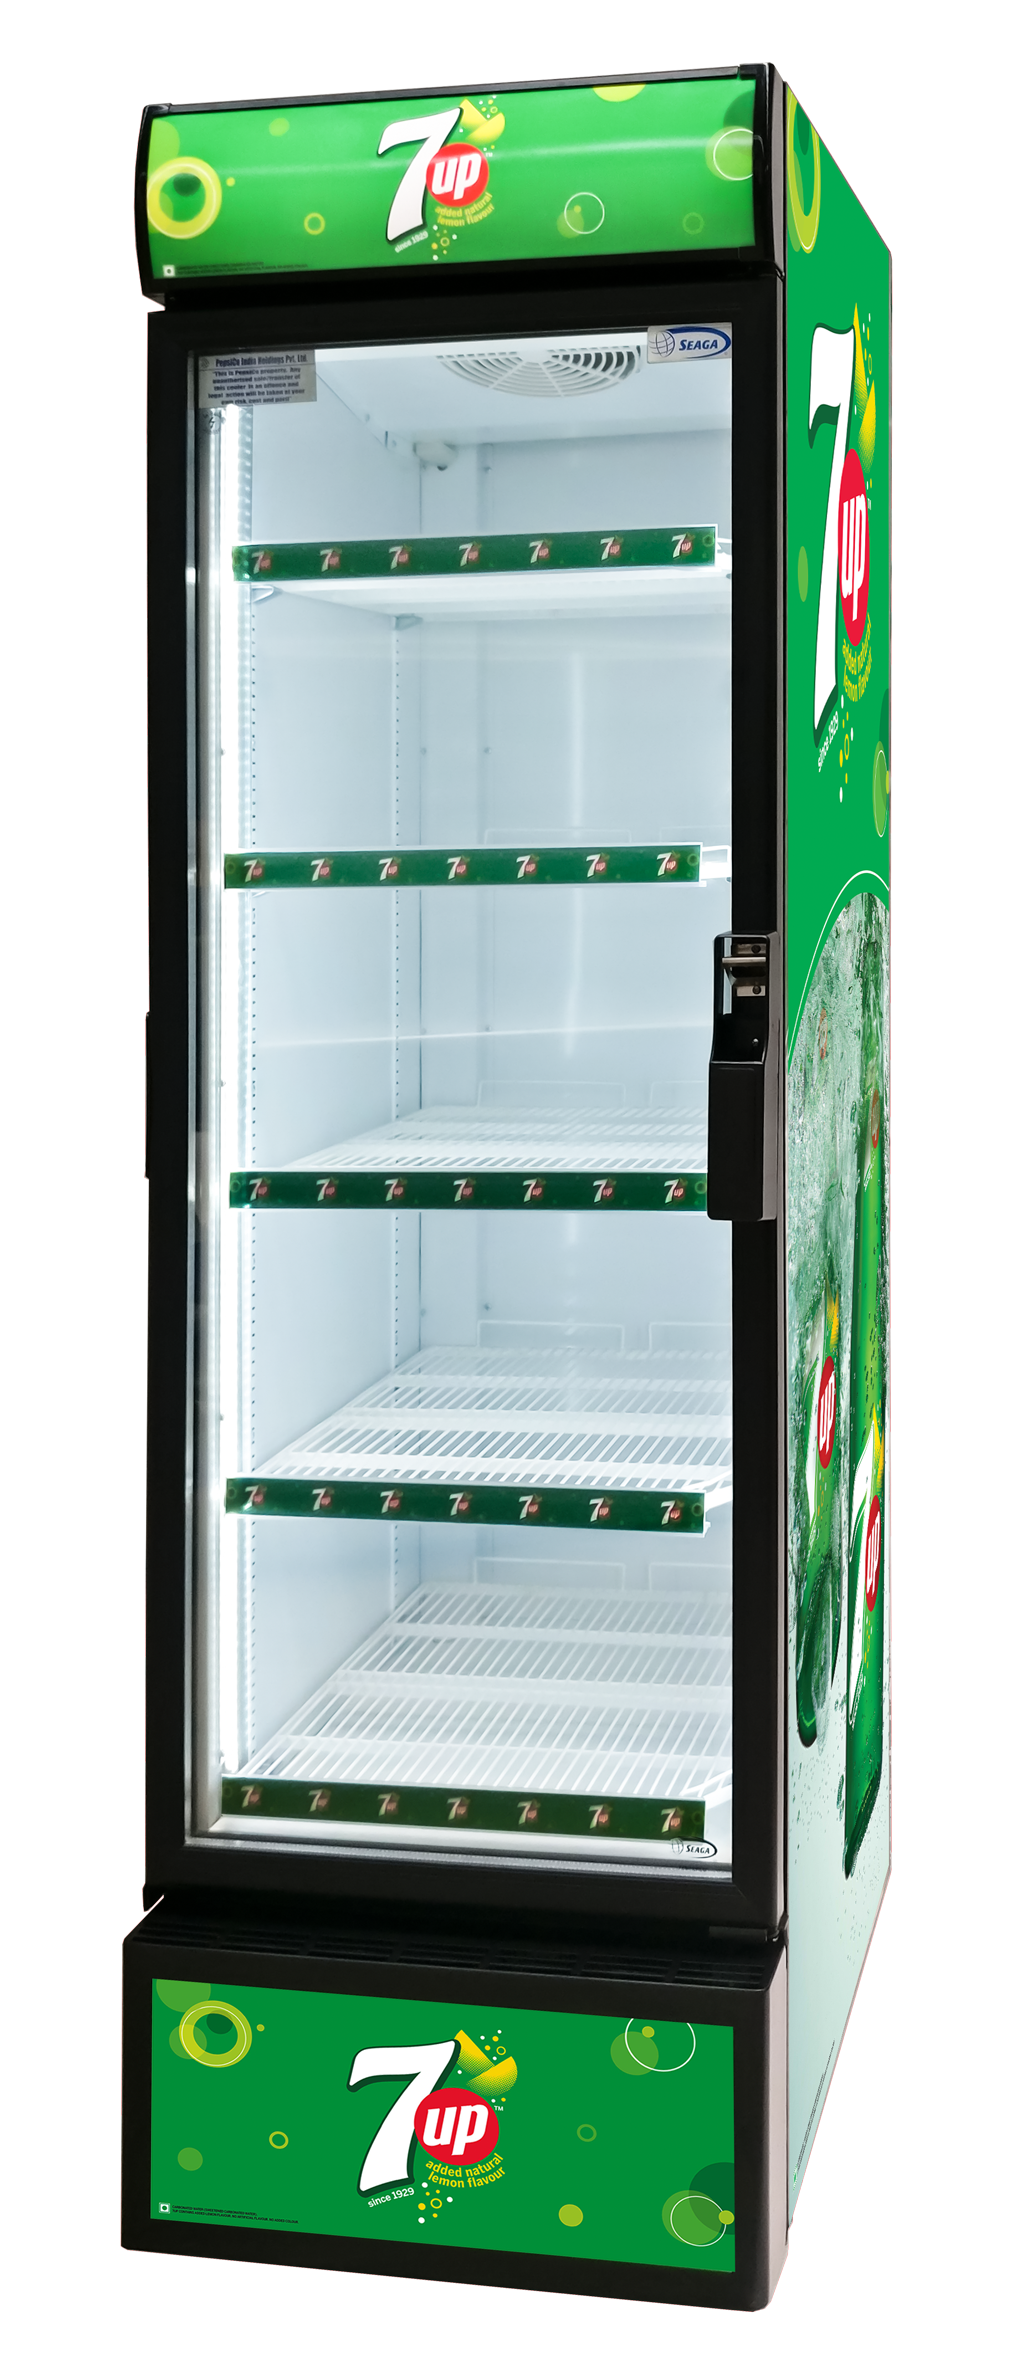 The S500 Glass Door Merchandiser by Seaga offers innovative technology to ensure the best refrigeration and high visibility presentation of your items